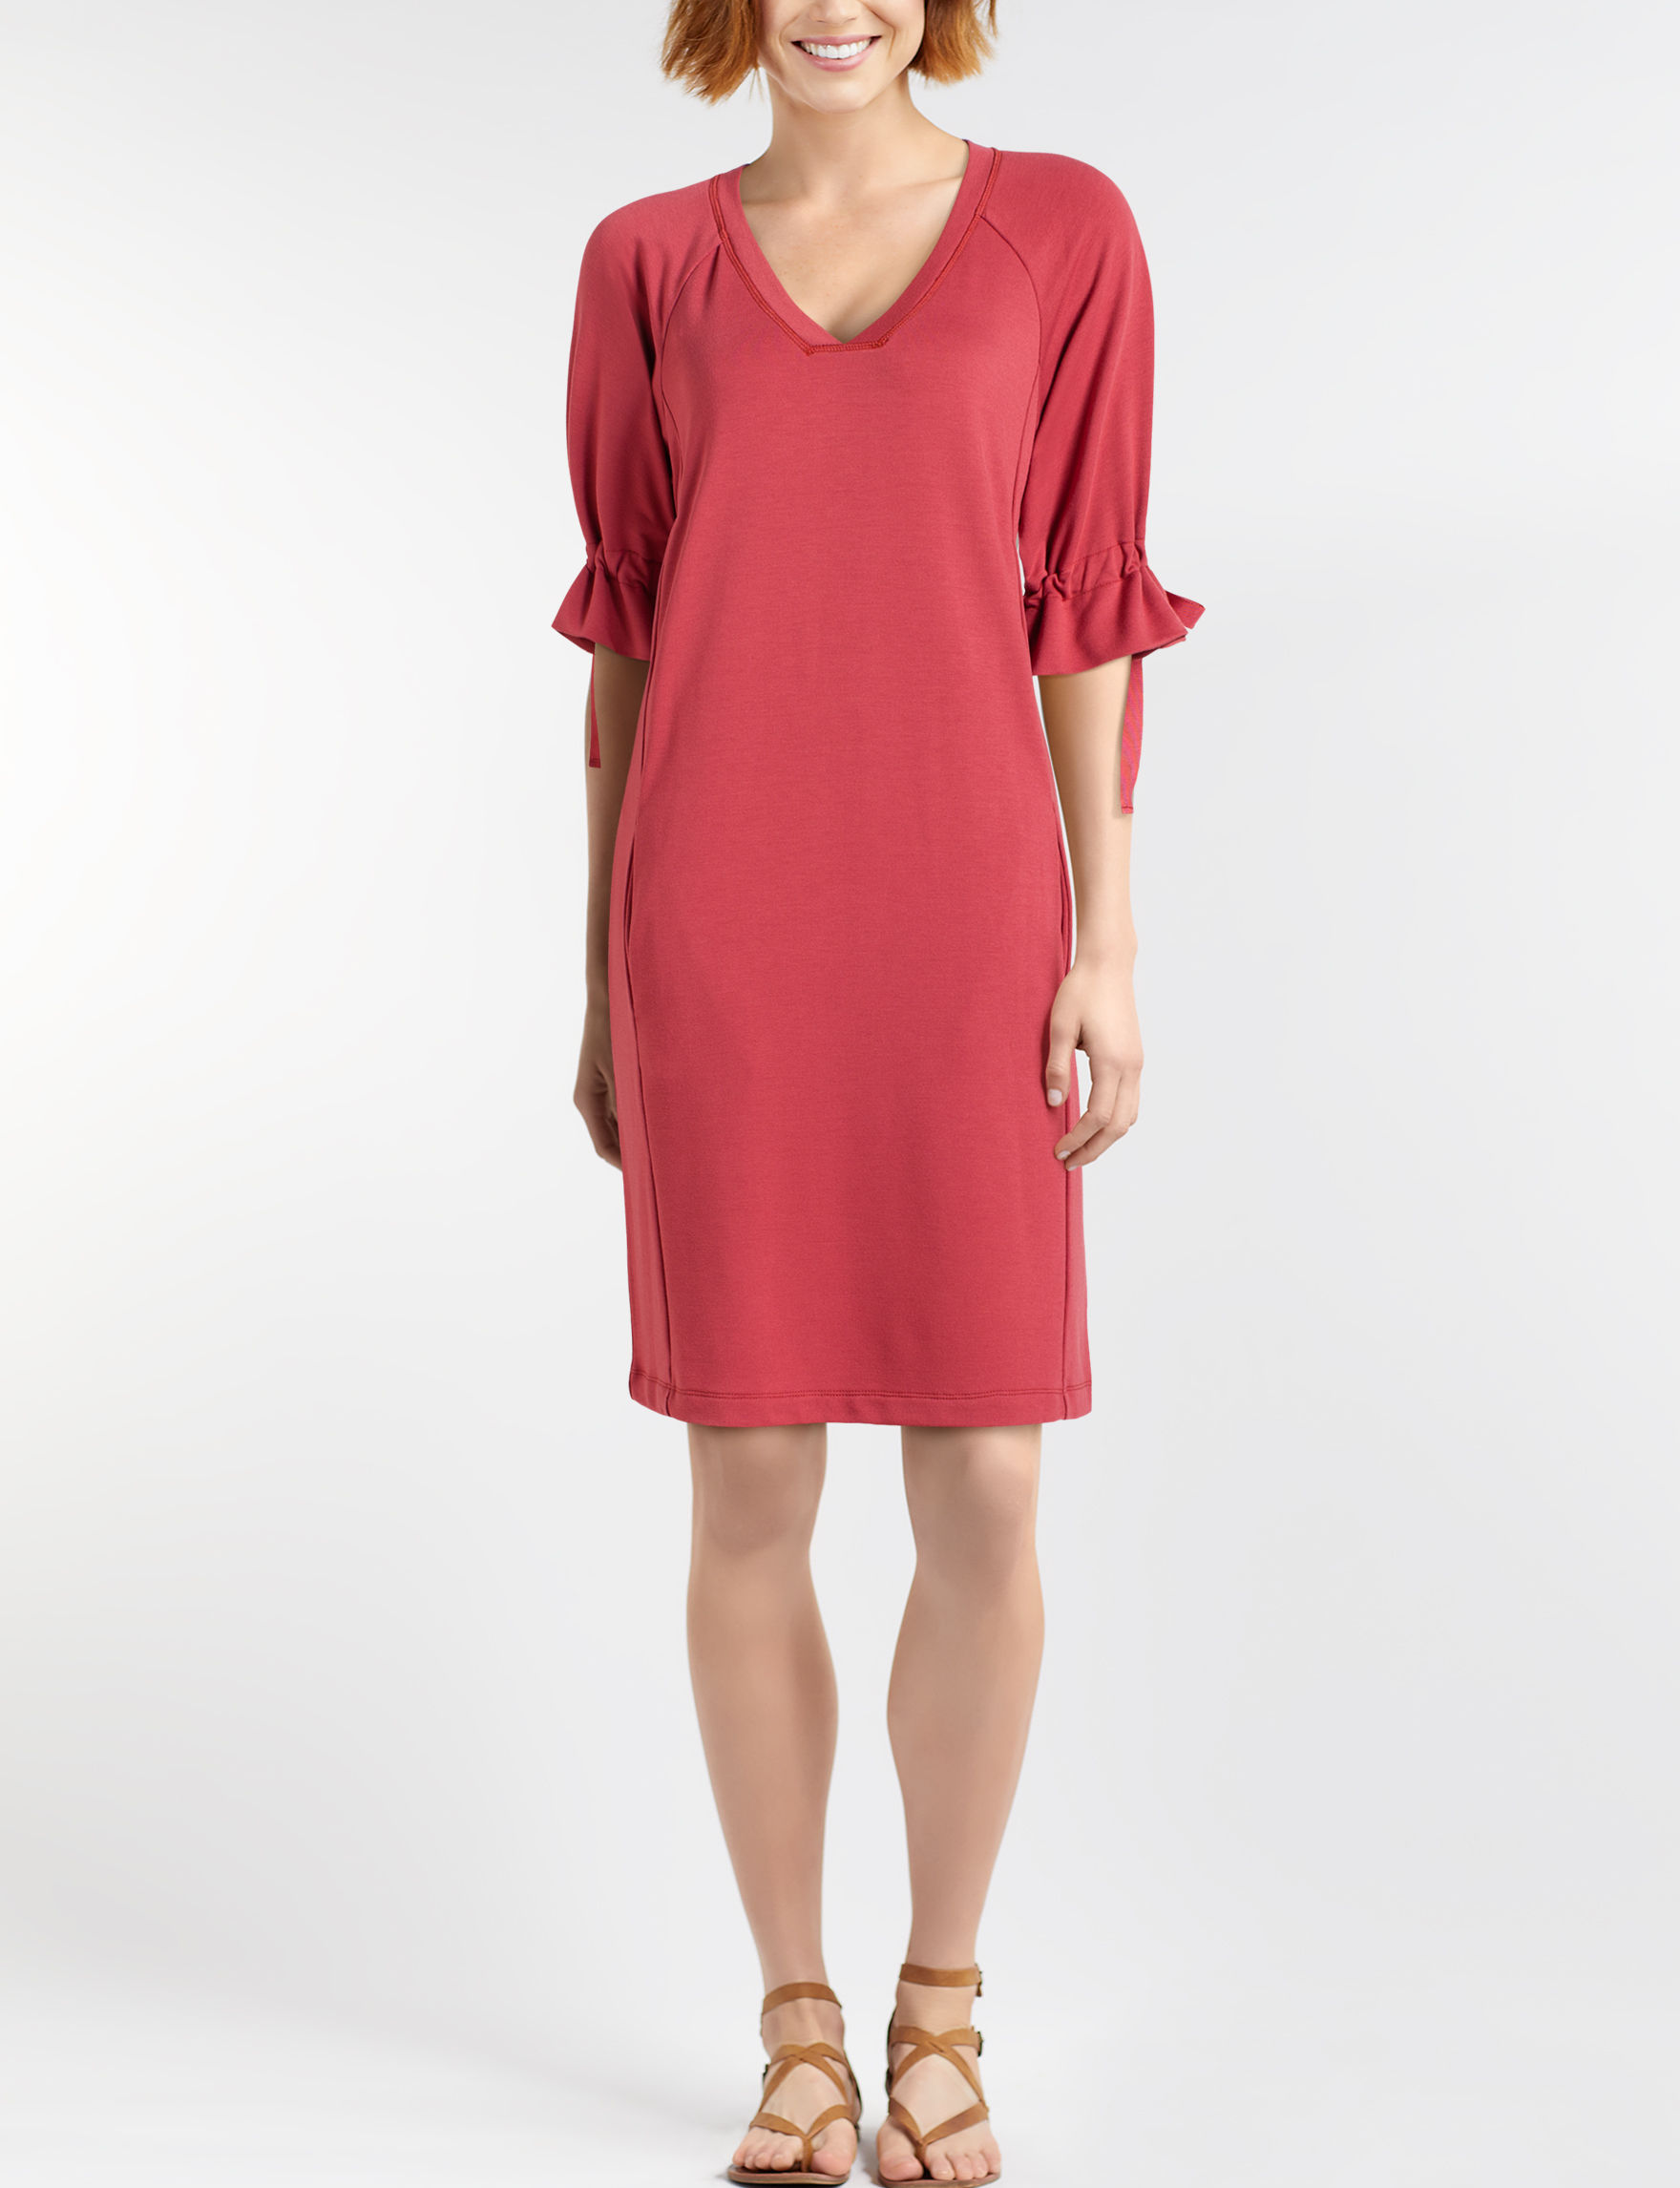 One World Red Everyday & Casual Shift Dresses